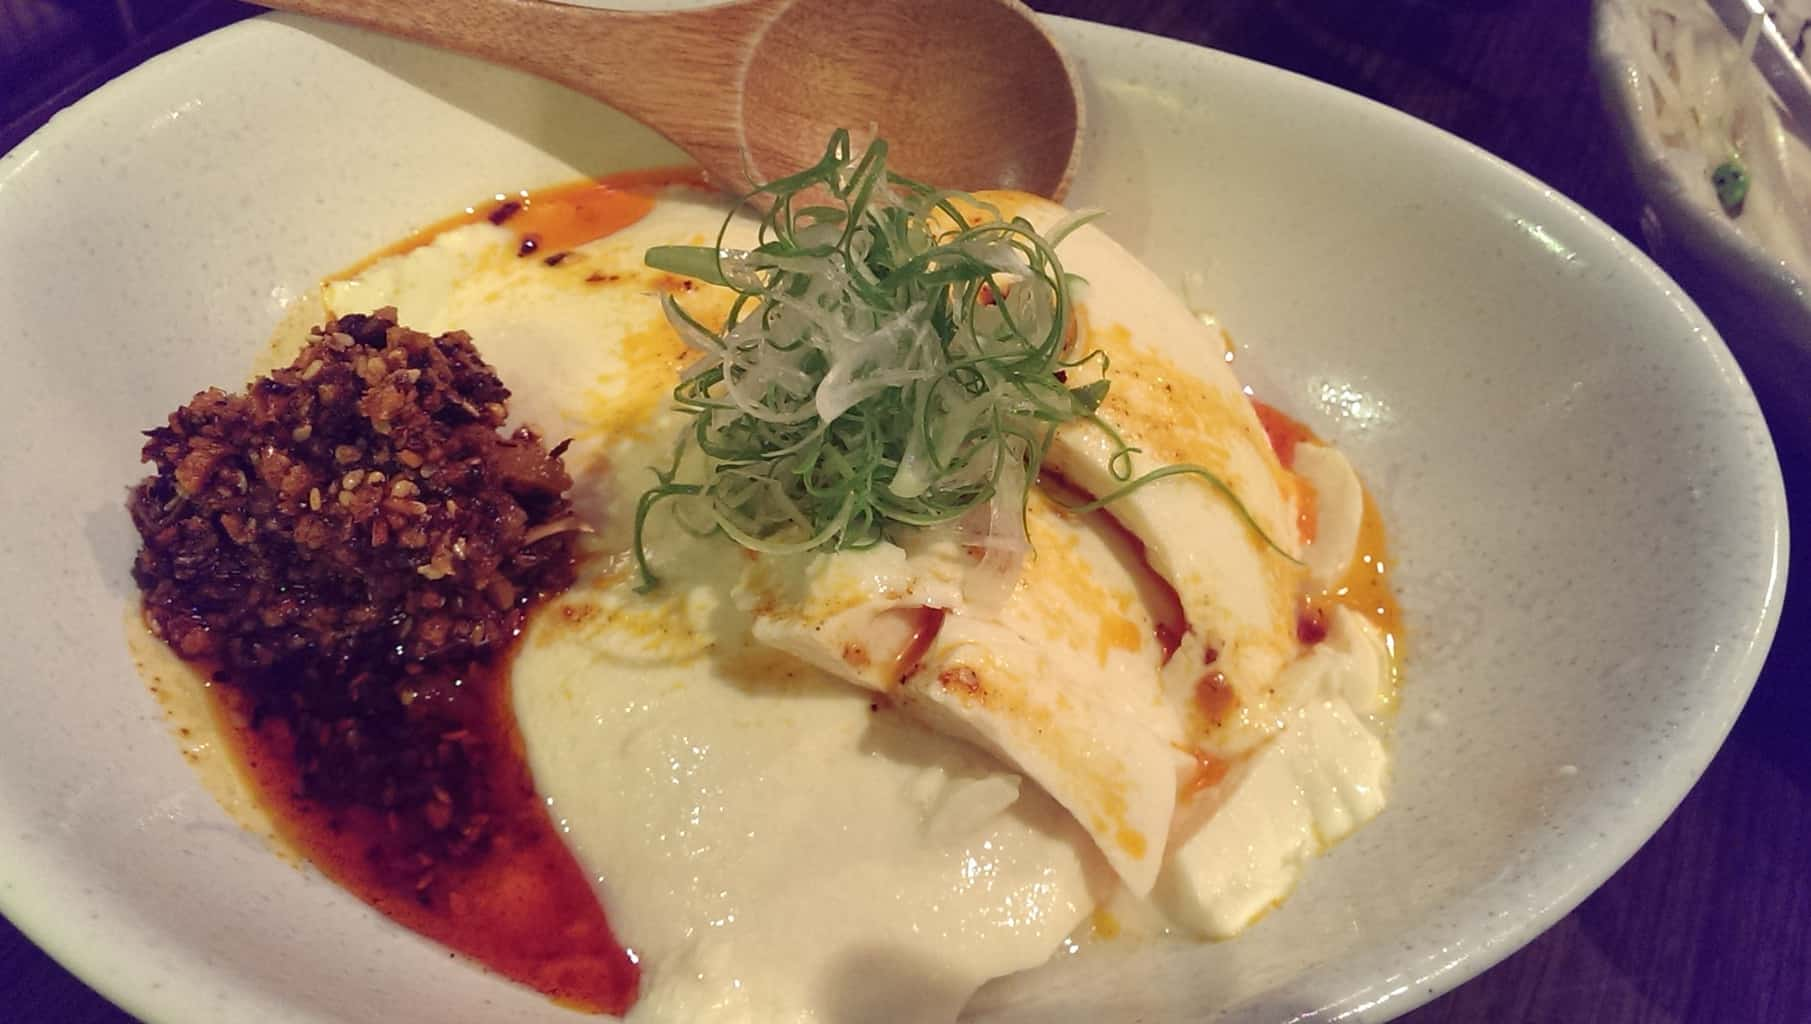 cold tofu with chili oil and poached egg